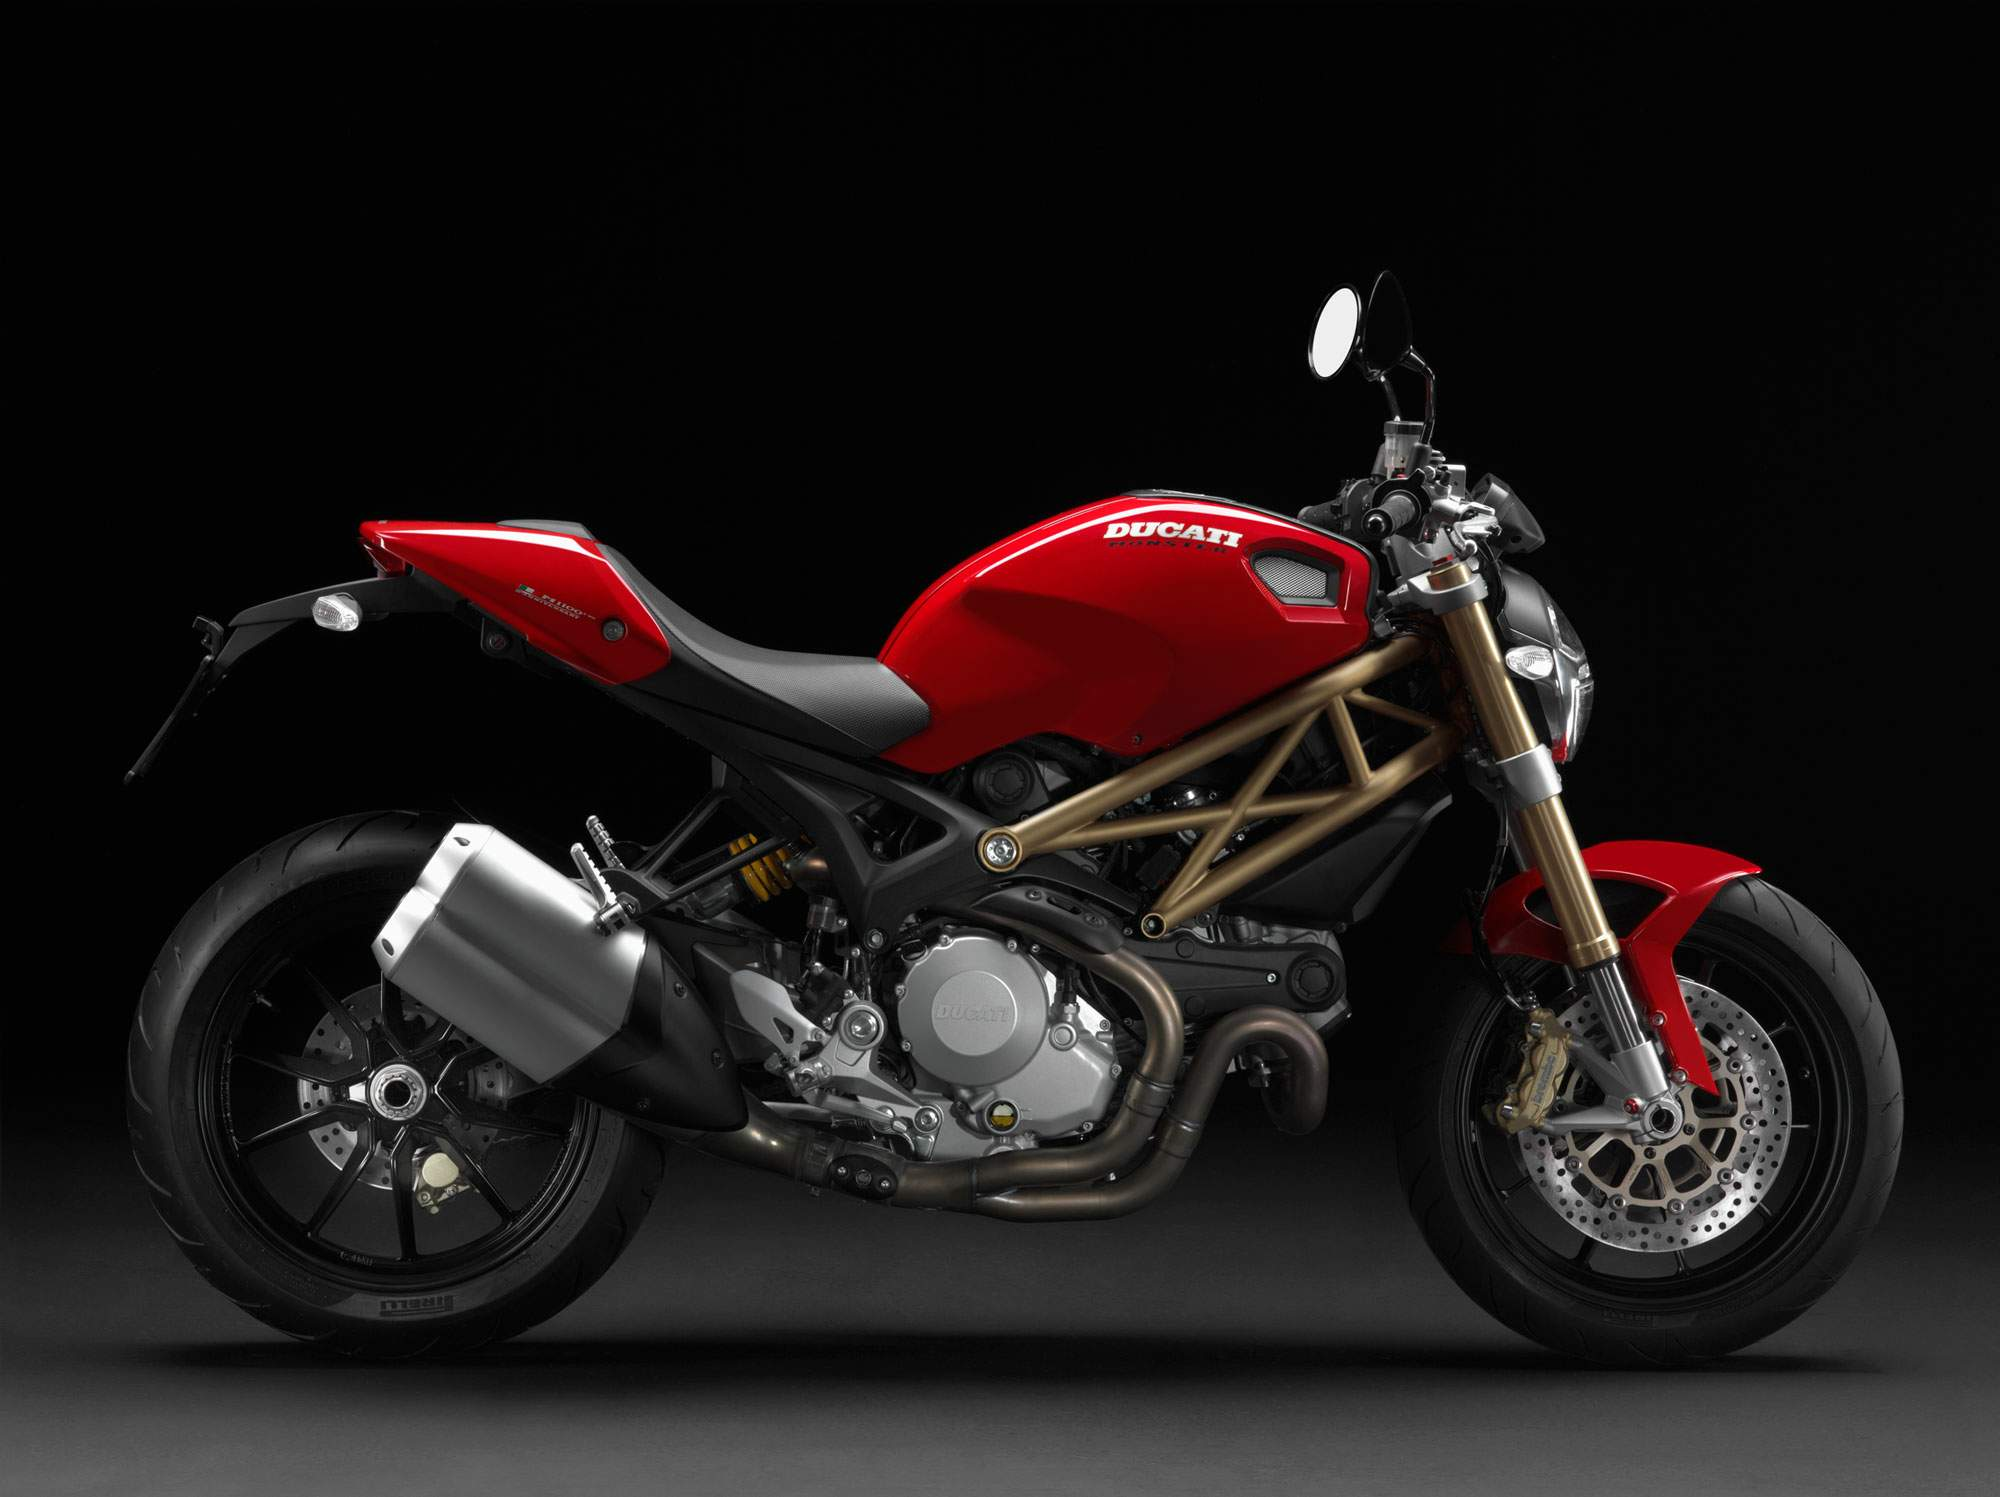 Мотоцикл Ducati Monster 1100 EVO 20th Anniversary 2013